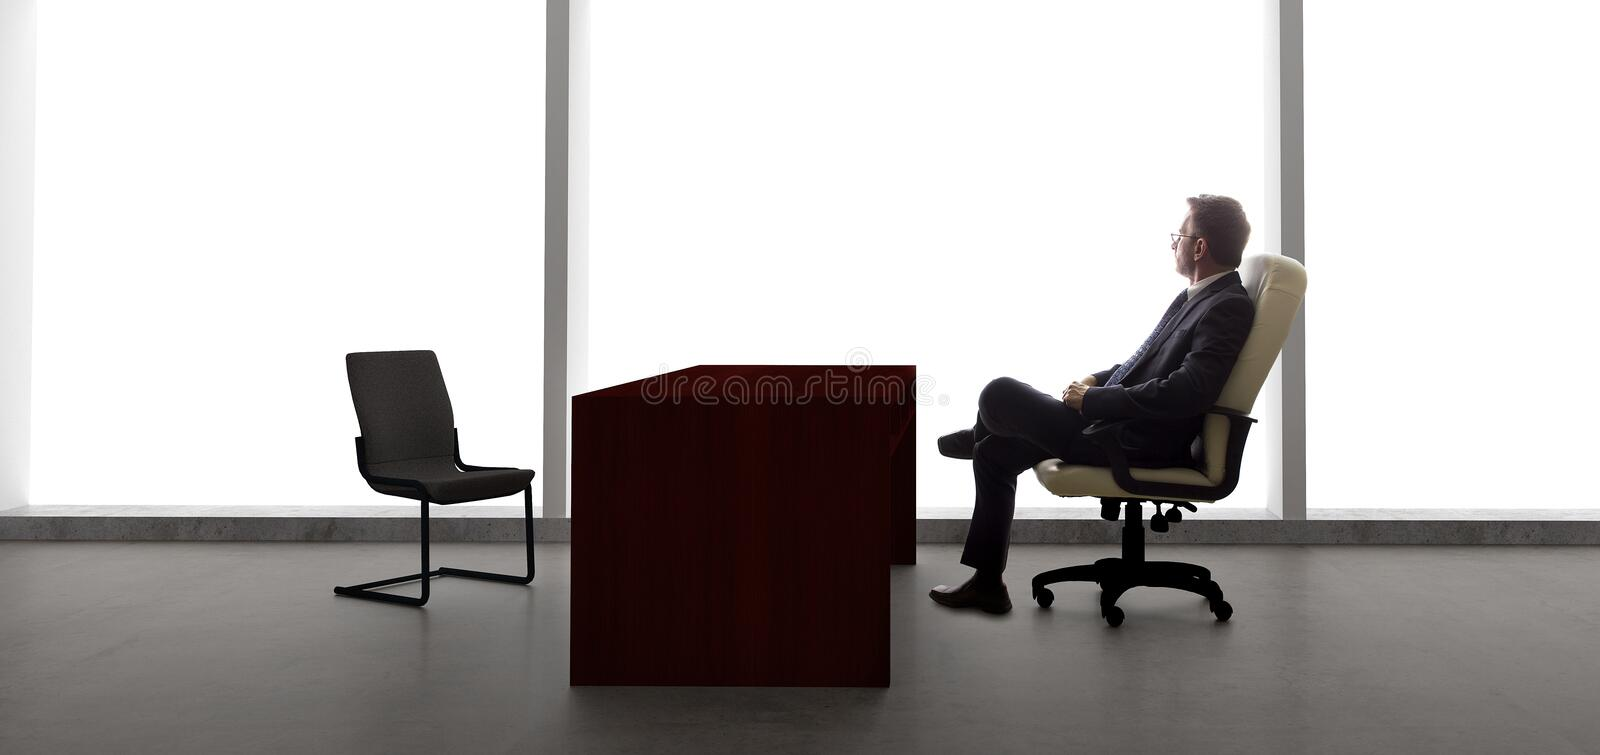 Businessman Waiting For Client or Meeting royalty free stock photos